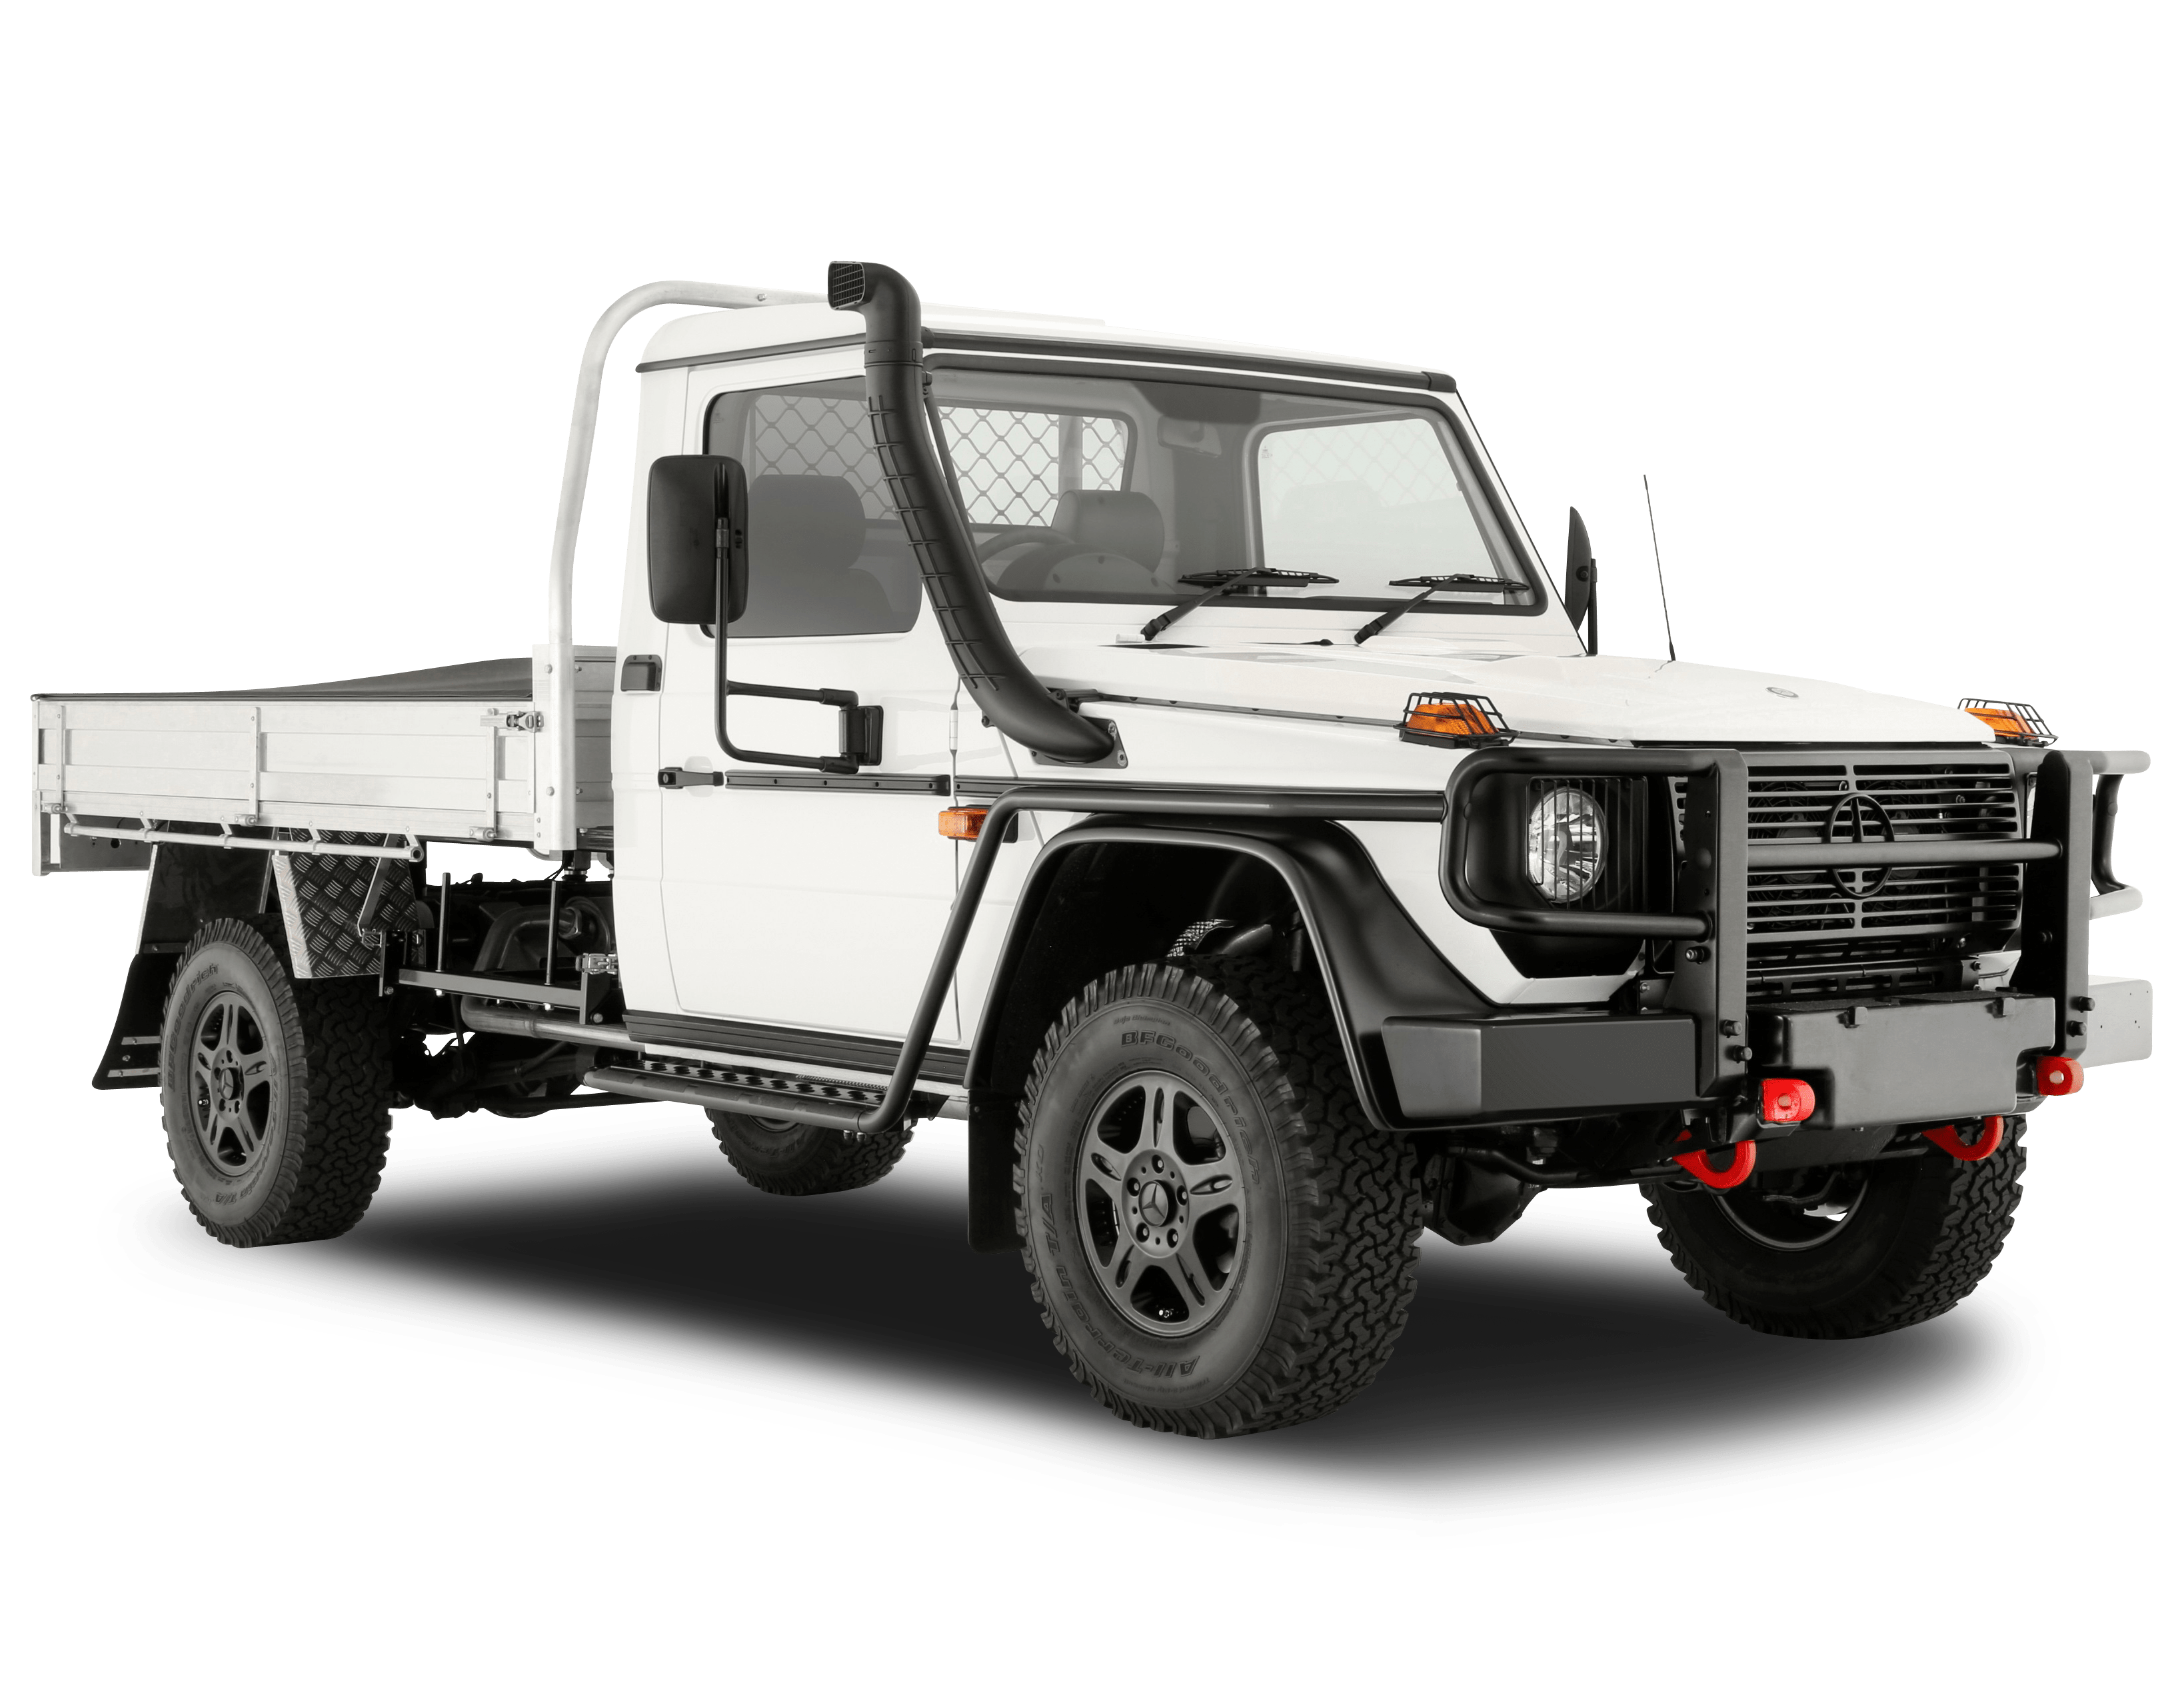 Mercedes G Class Review Price For Sale Models Specs News Carsguide